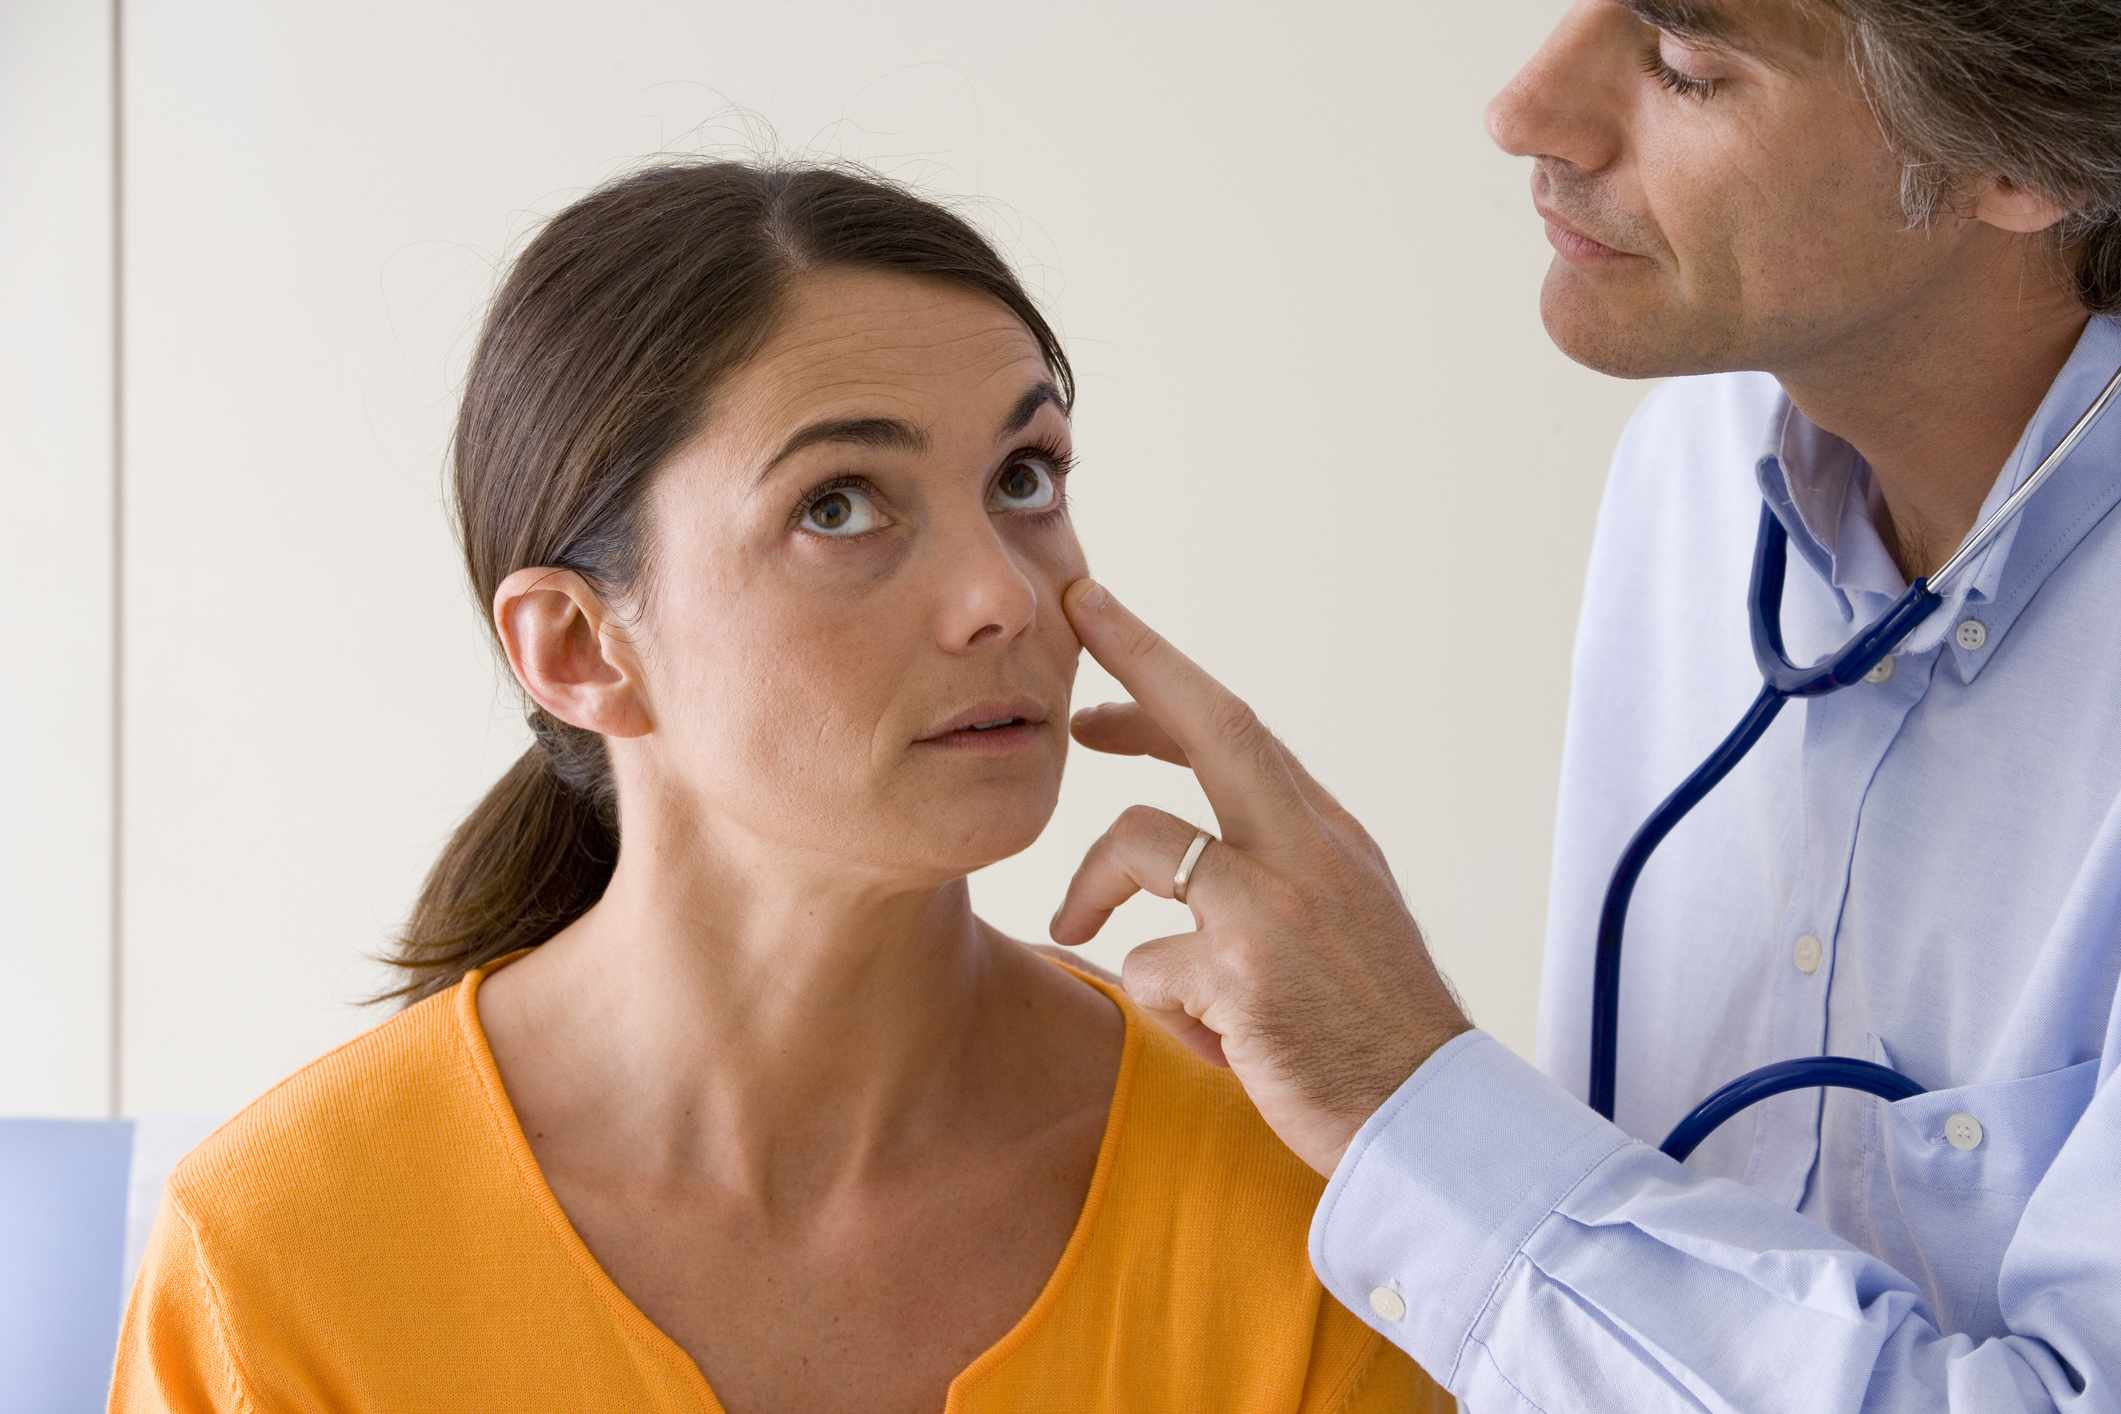 A woman being examined by a doctor for anemia